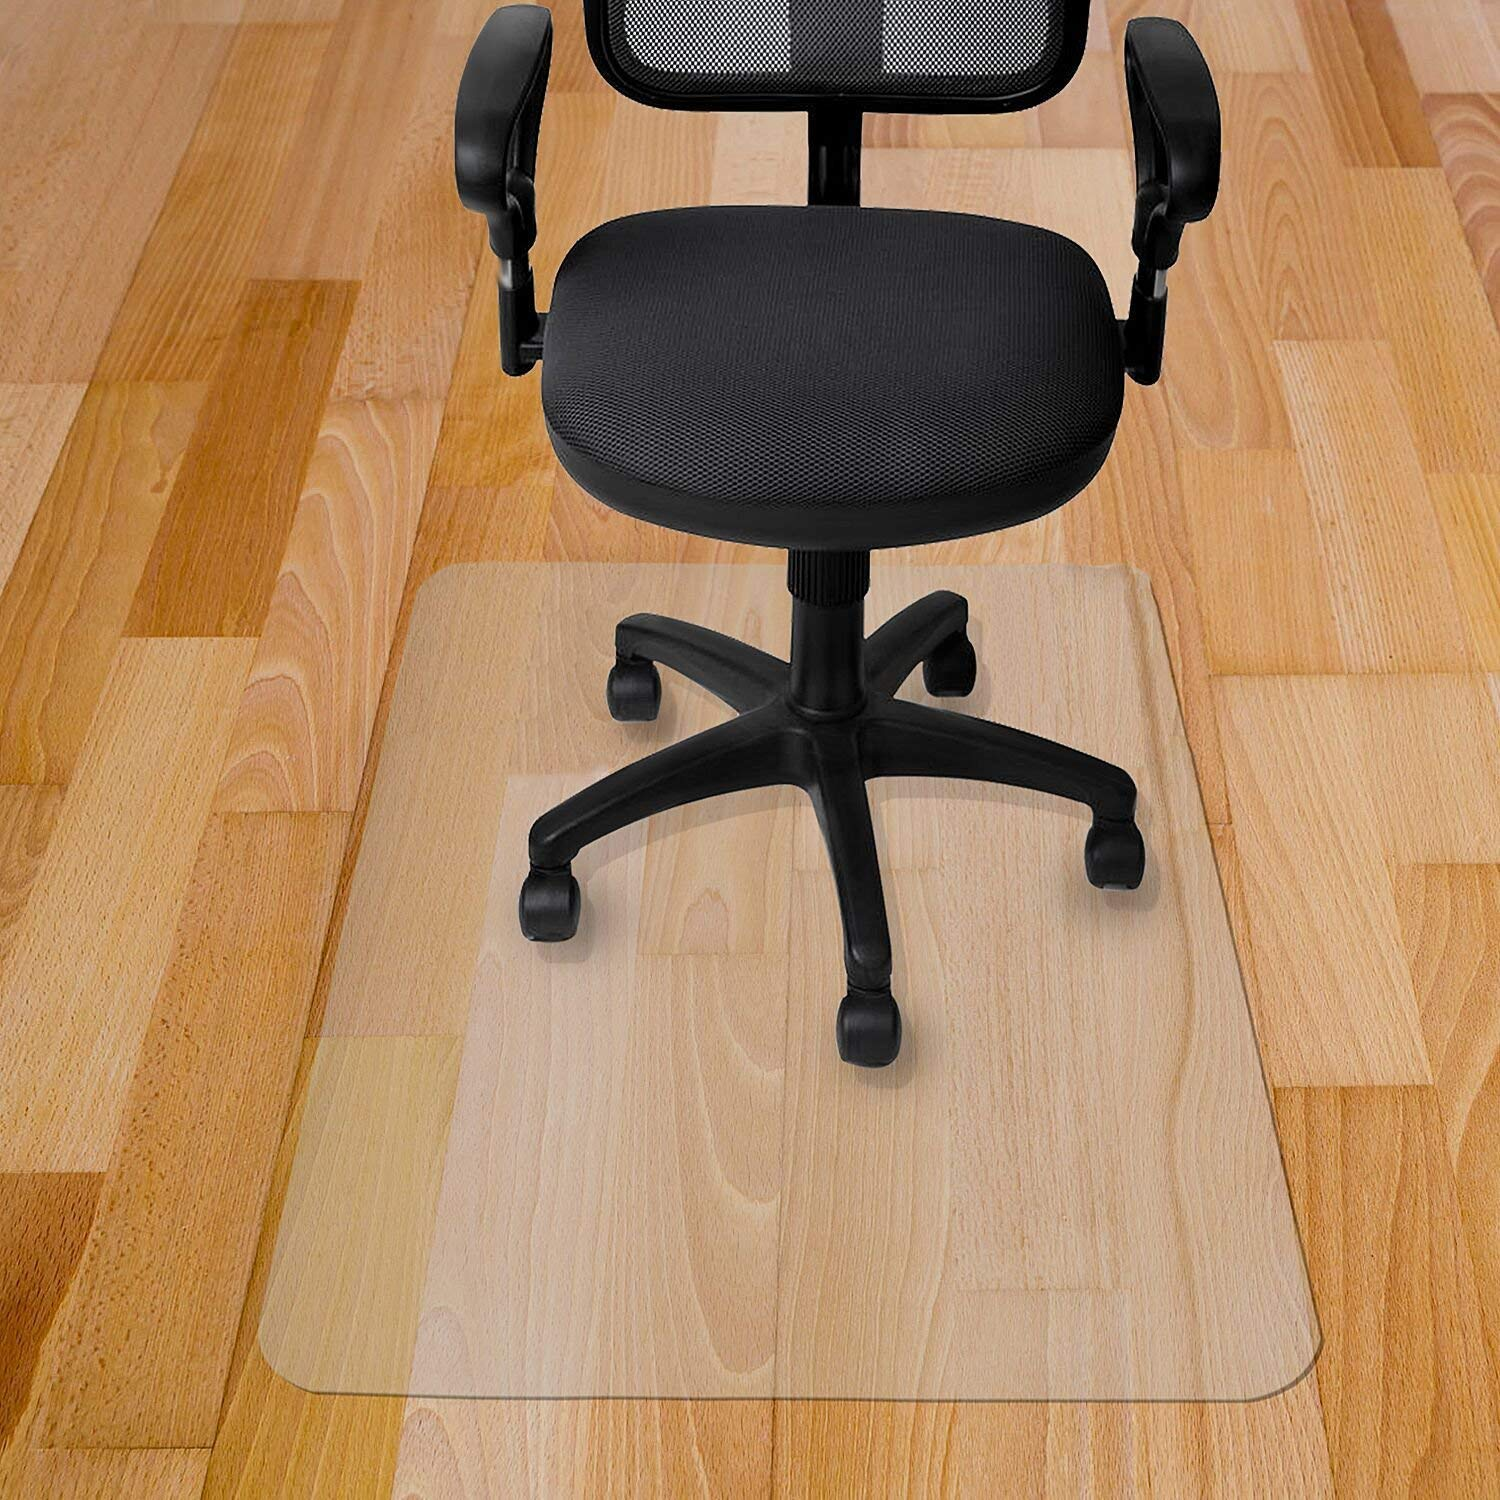 Antallcky Office Chair Mat Clear Rectangle 48''x 40'',Computer/Desk Chair Mat for Hardwood Floor,Anti-Slip,Anti-Scratched,Reduce Noise & Thick Multi-Purpose Floor Protector by Antallcky